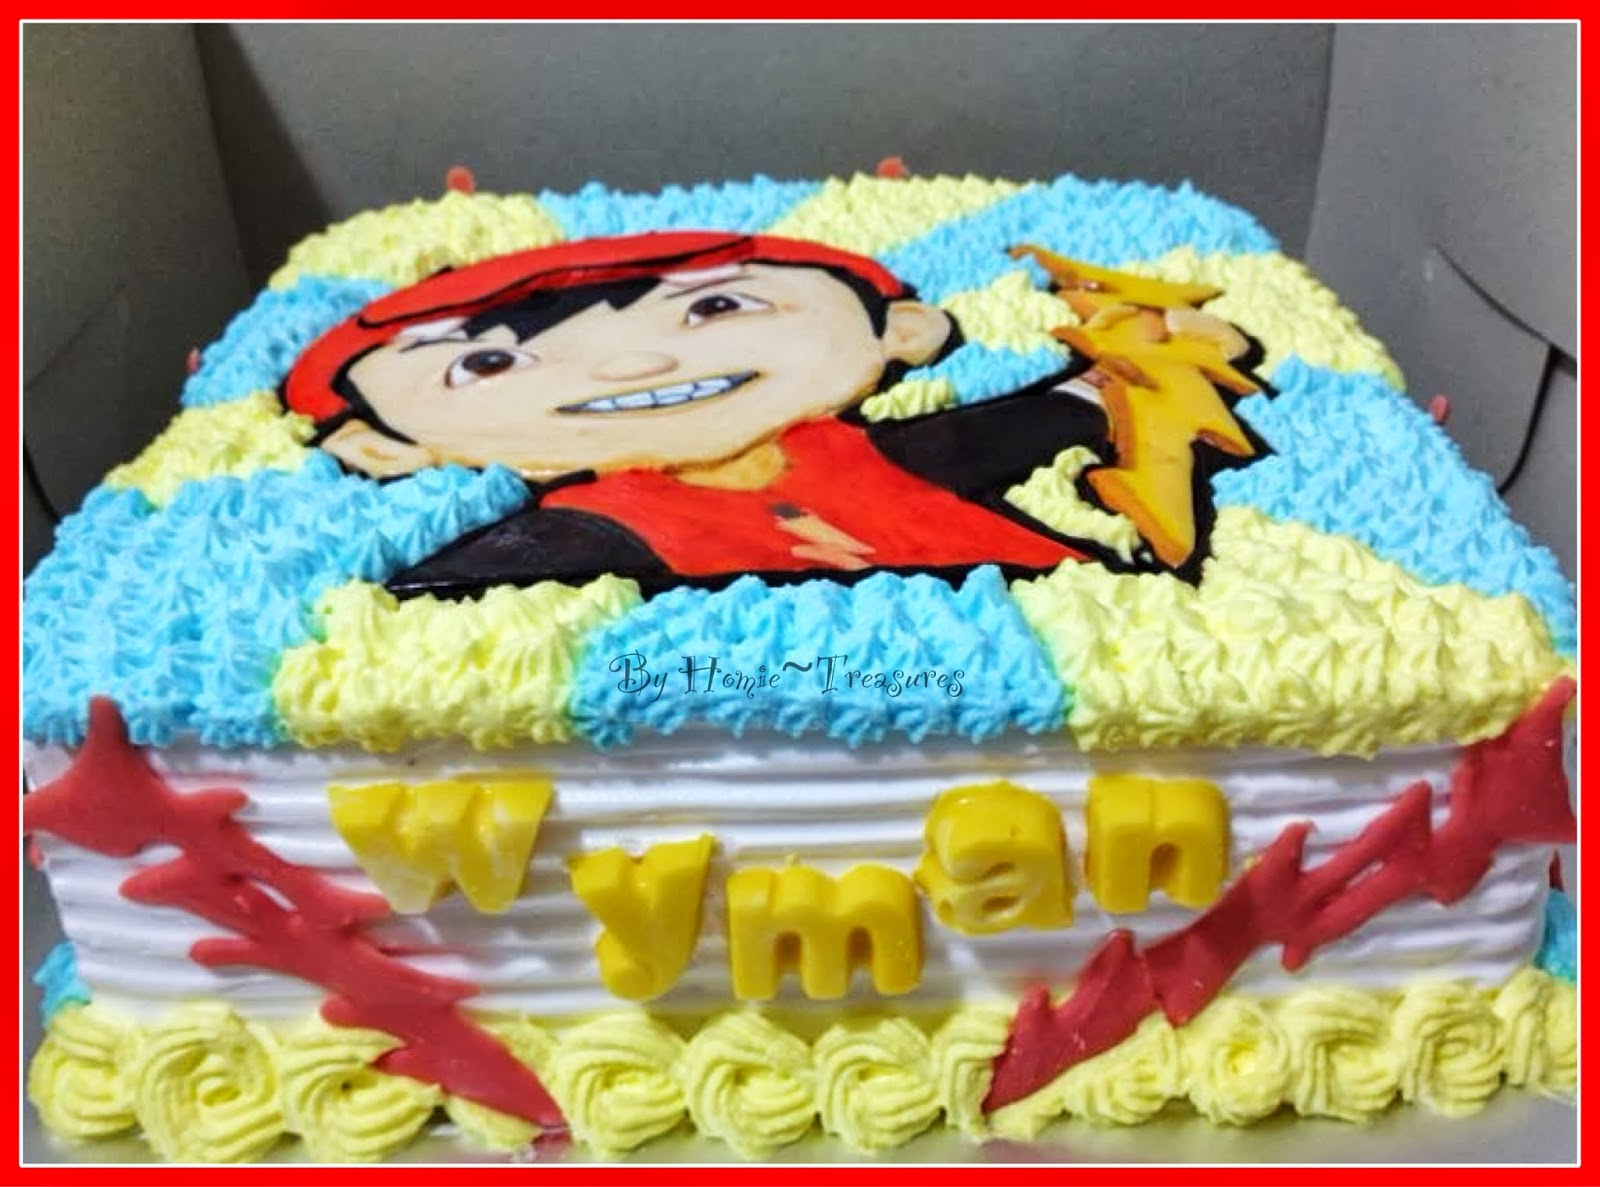 Cake Art Flower Moulding Paste Instructions : My humble piece of Art: A Boy Cake